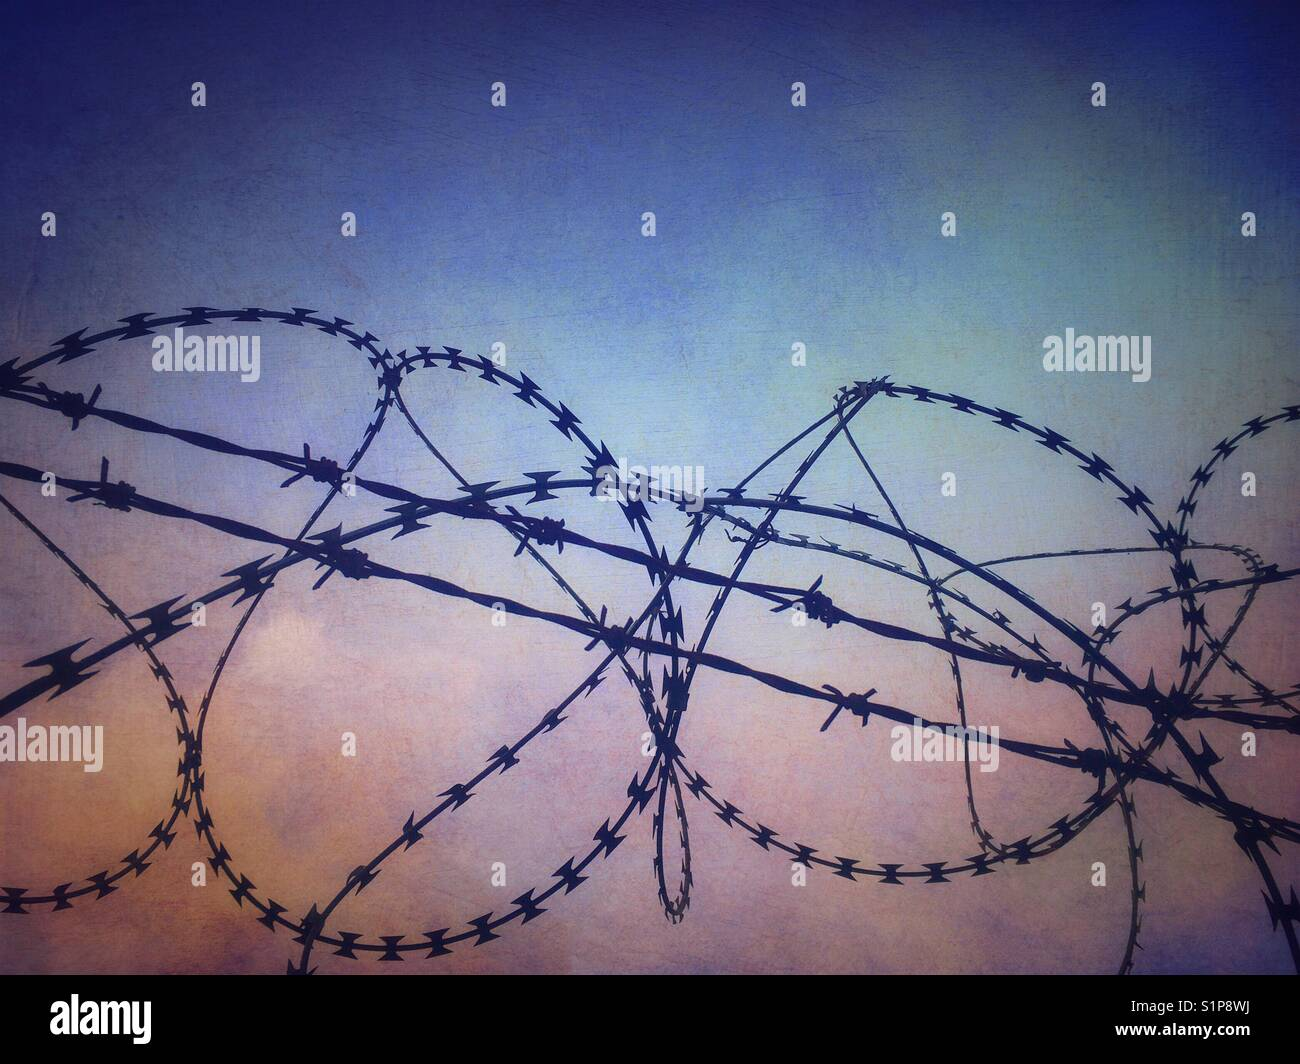 Razor wire close up - Stock Image